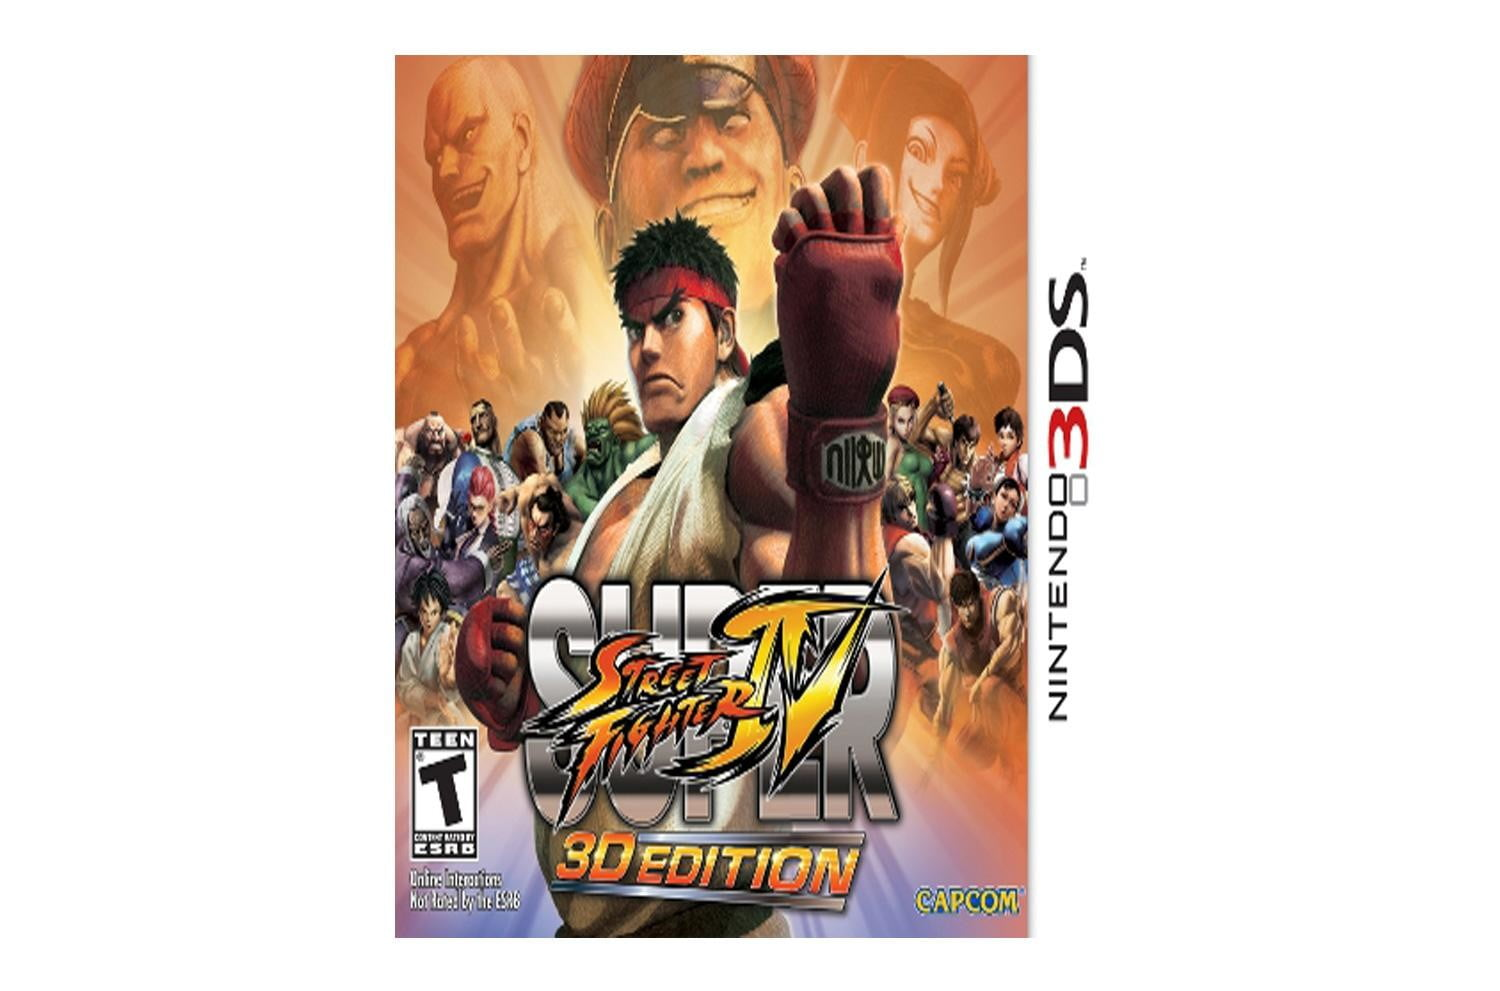 Super-Street-Fighter-IV-3D-Edition-cover-art